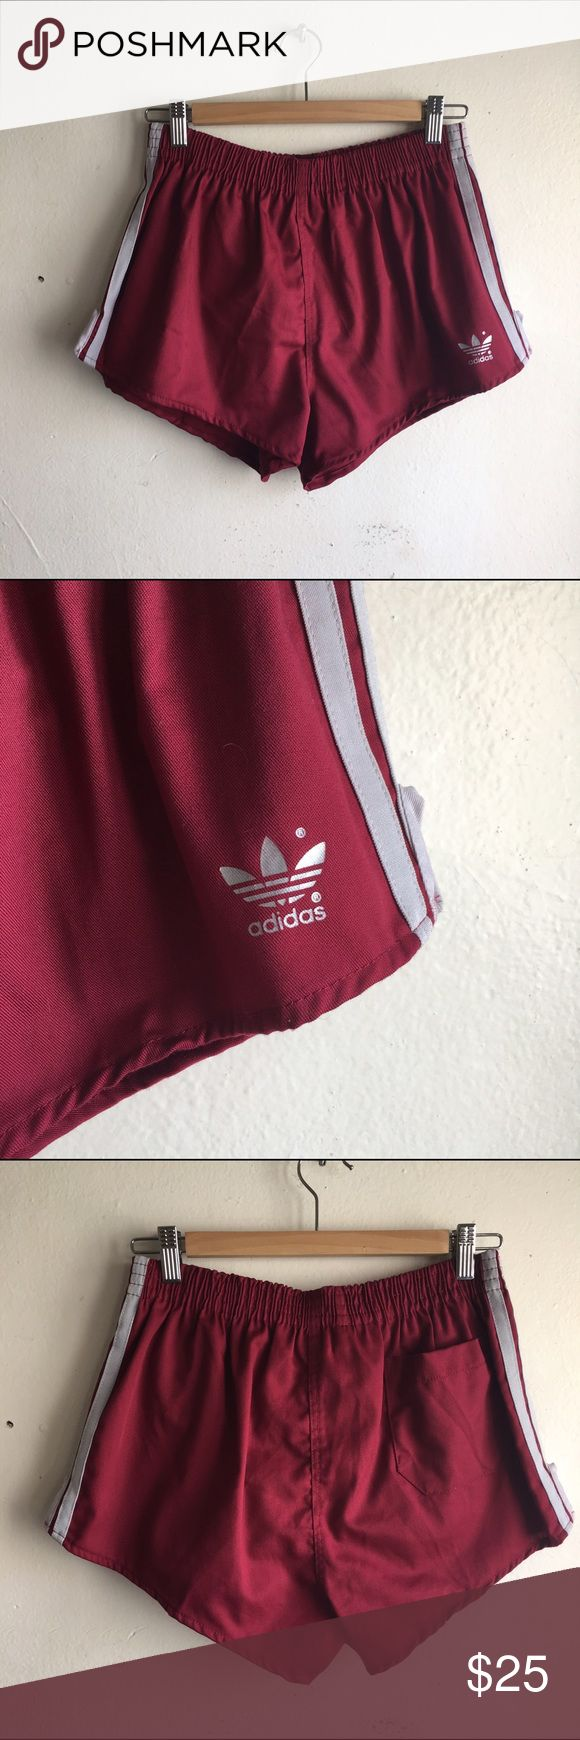 CLOSET CLEAR-OUT Adidas Soccer Shorts Vintage Adidas soccer shorts in perfect condition. Built in briefs. One back pocket. #K056 adidas Shorts